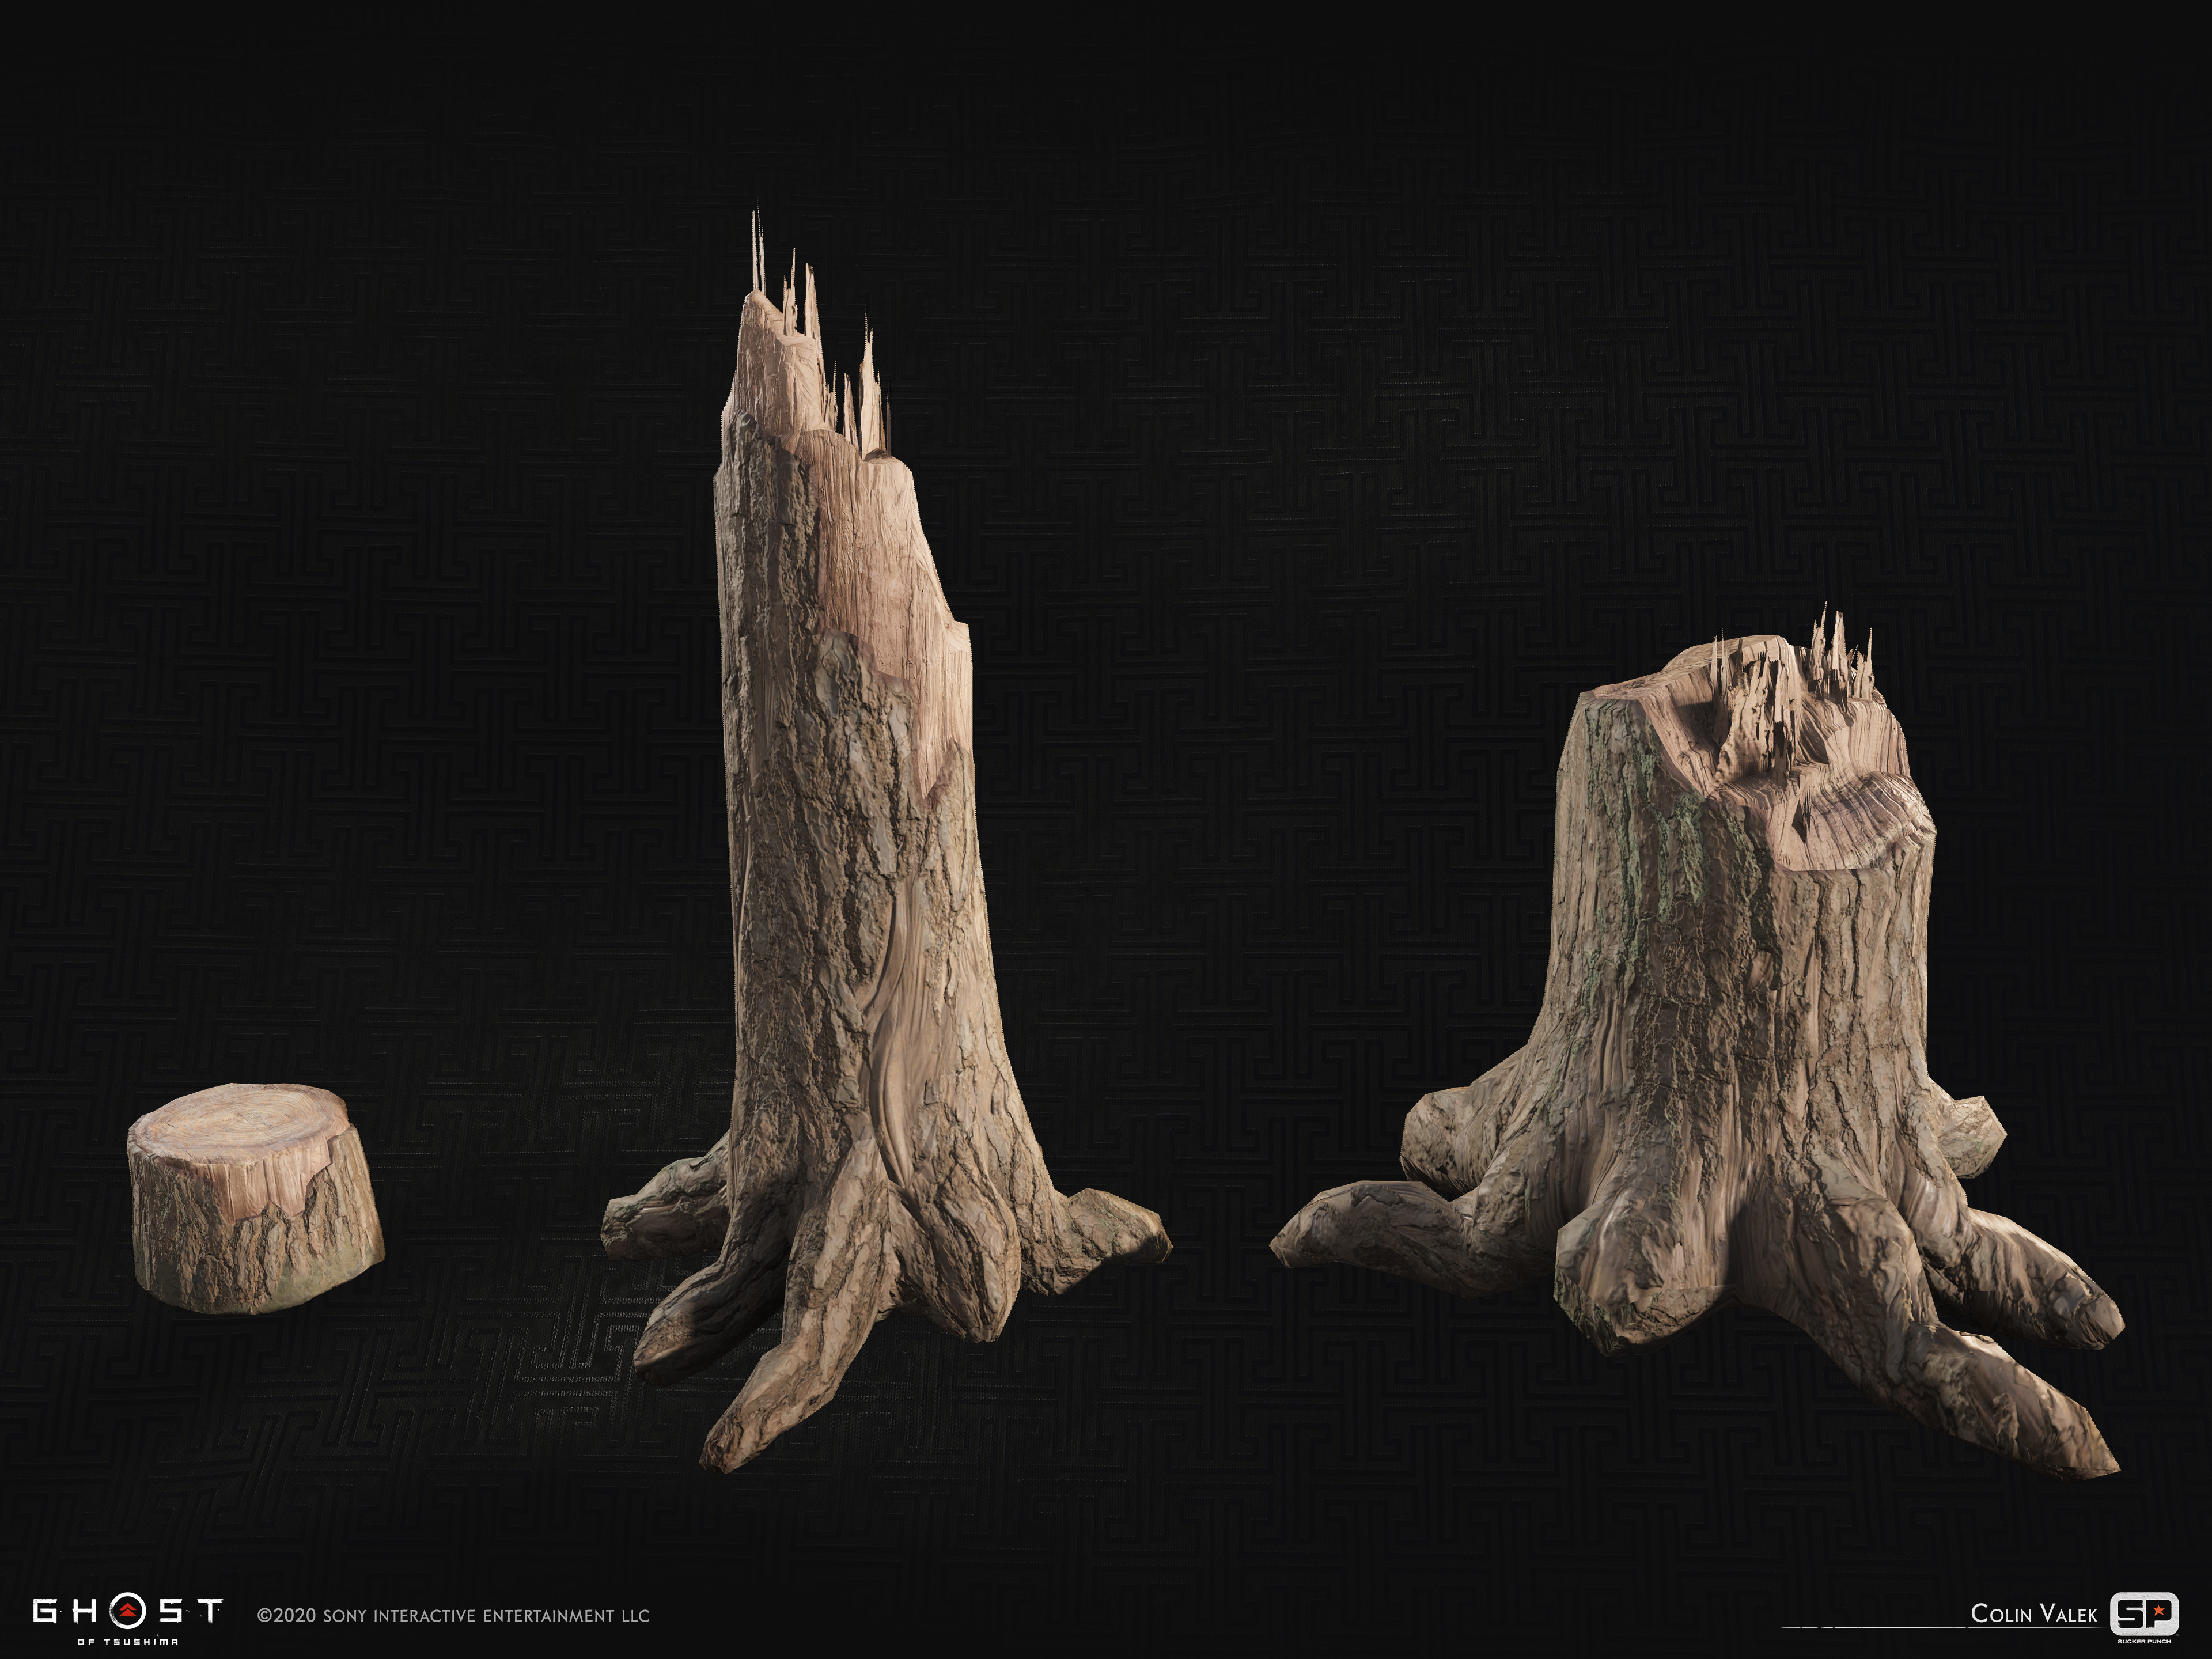 A few tree stump variants.